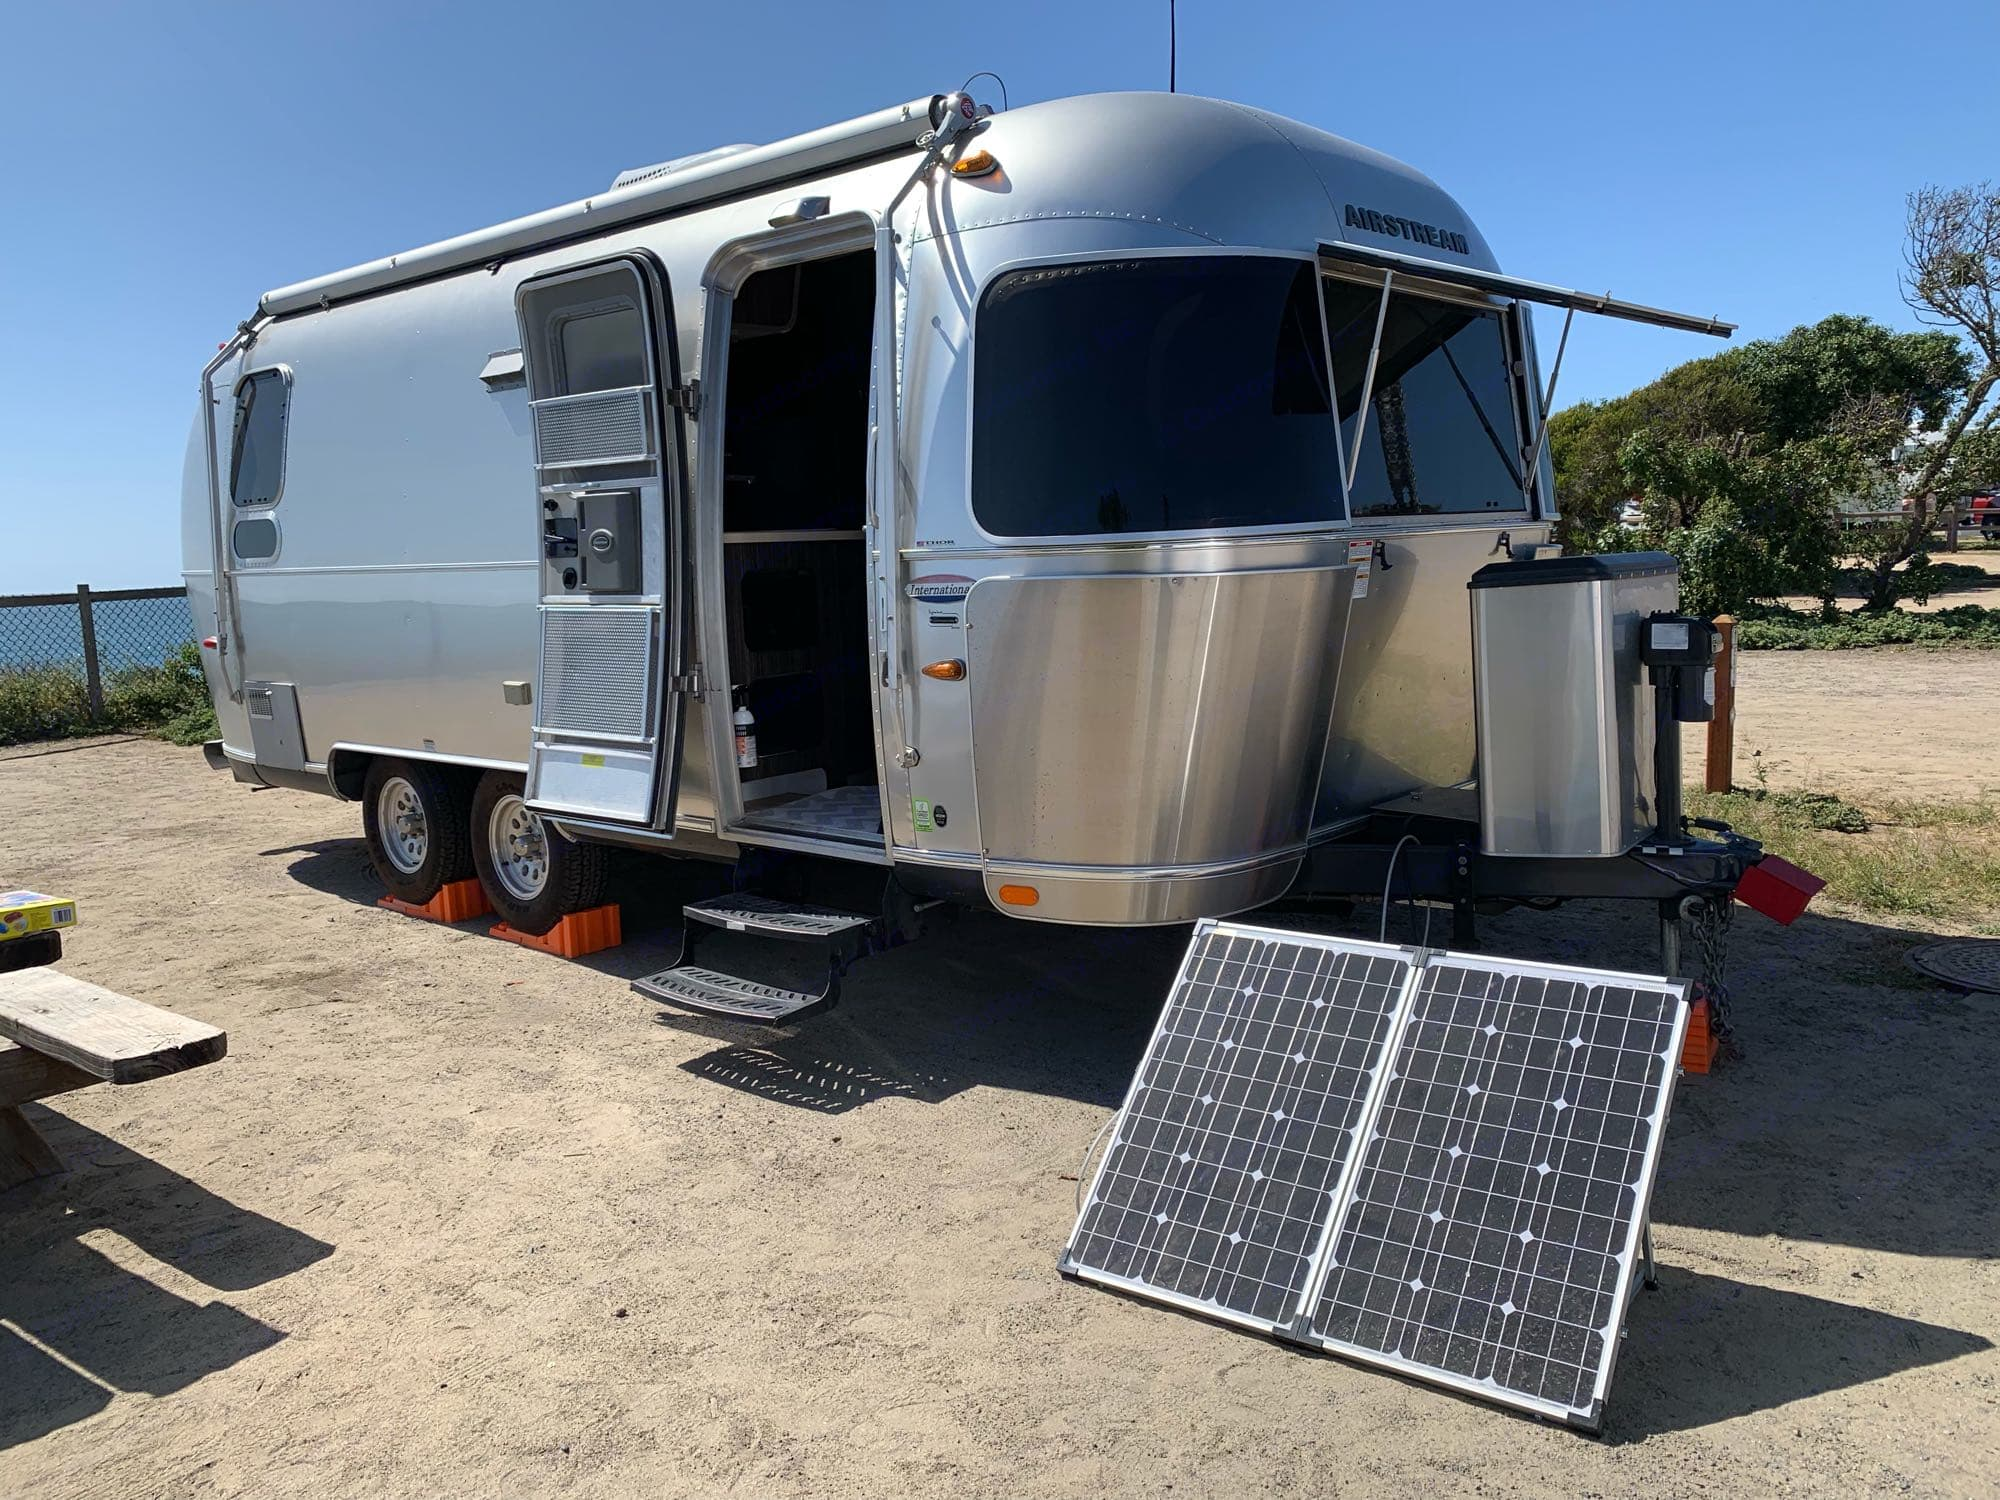 this little solar panel keeps the battery charged for all basic needs. Airstream International 2015